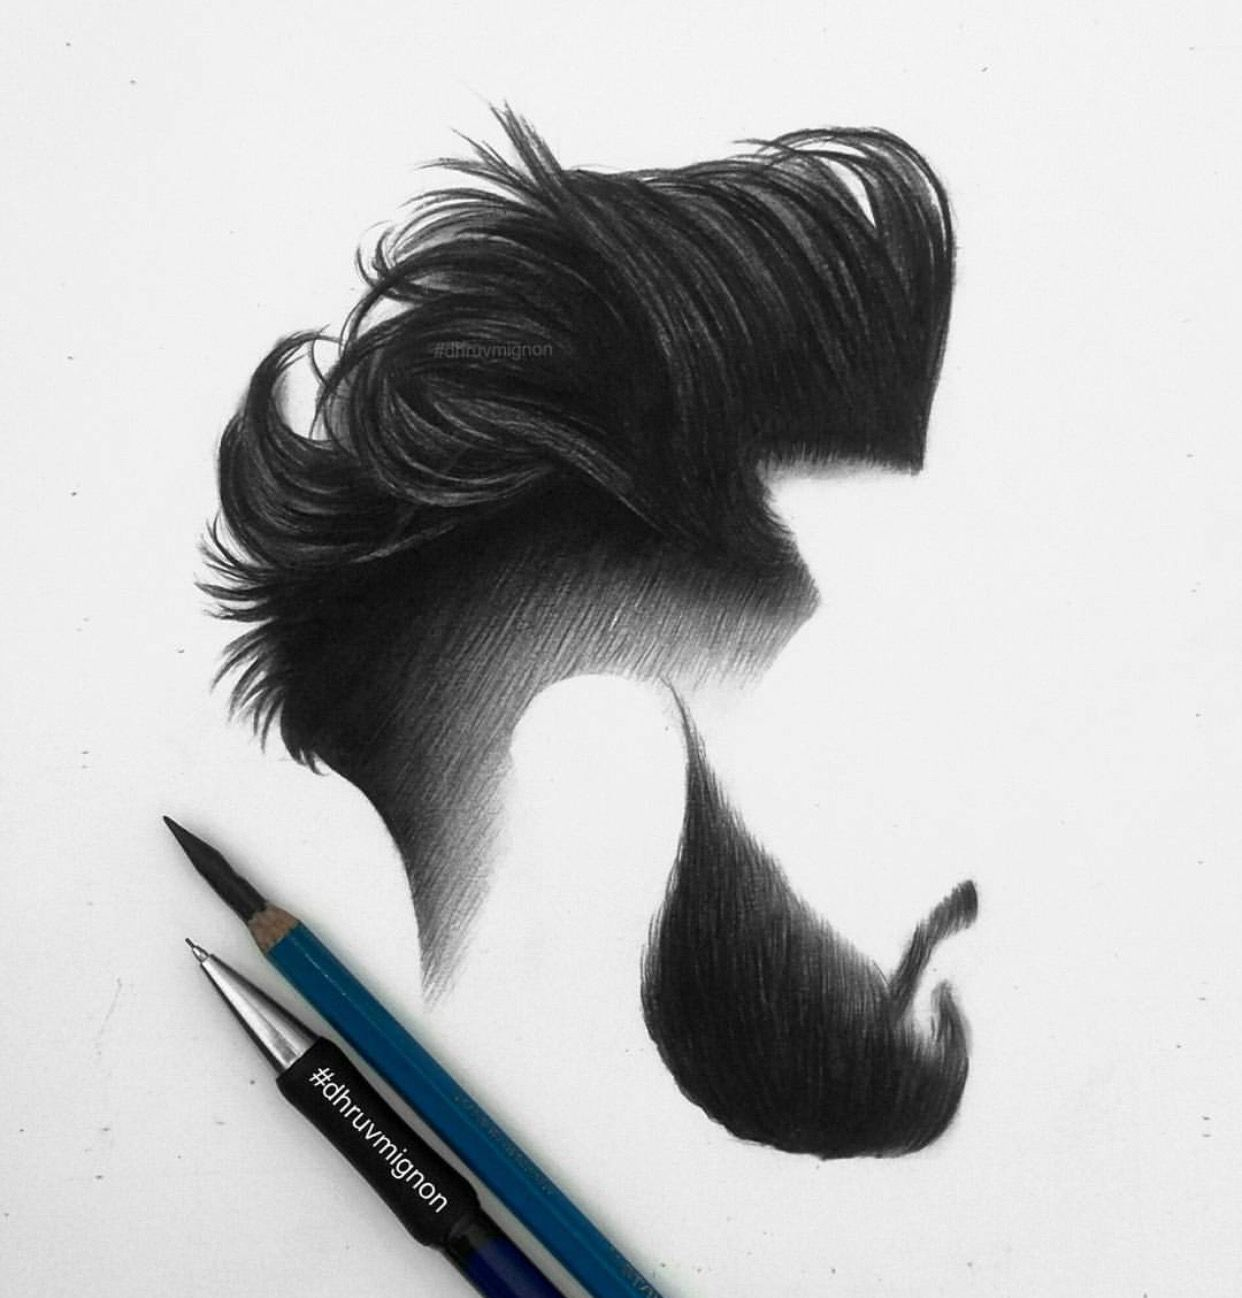 Boy haircuts drawing hair and beard detailed work dhruvmignon be inspirational mz